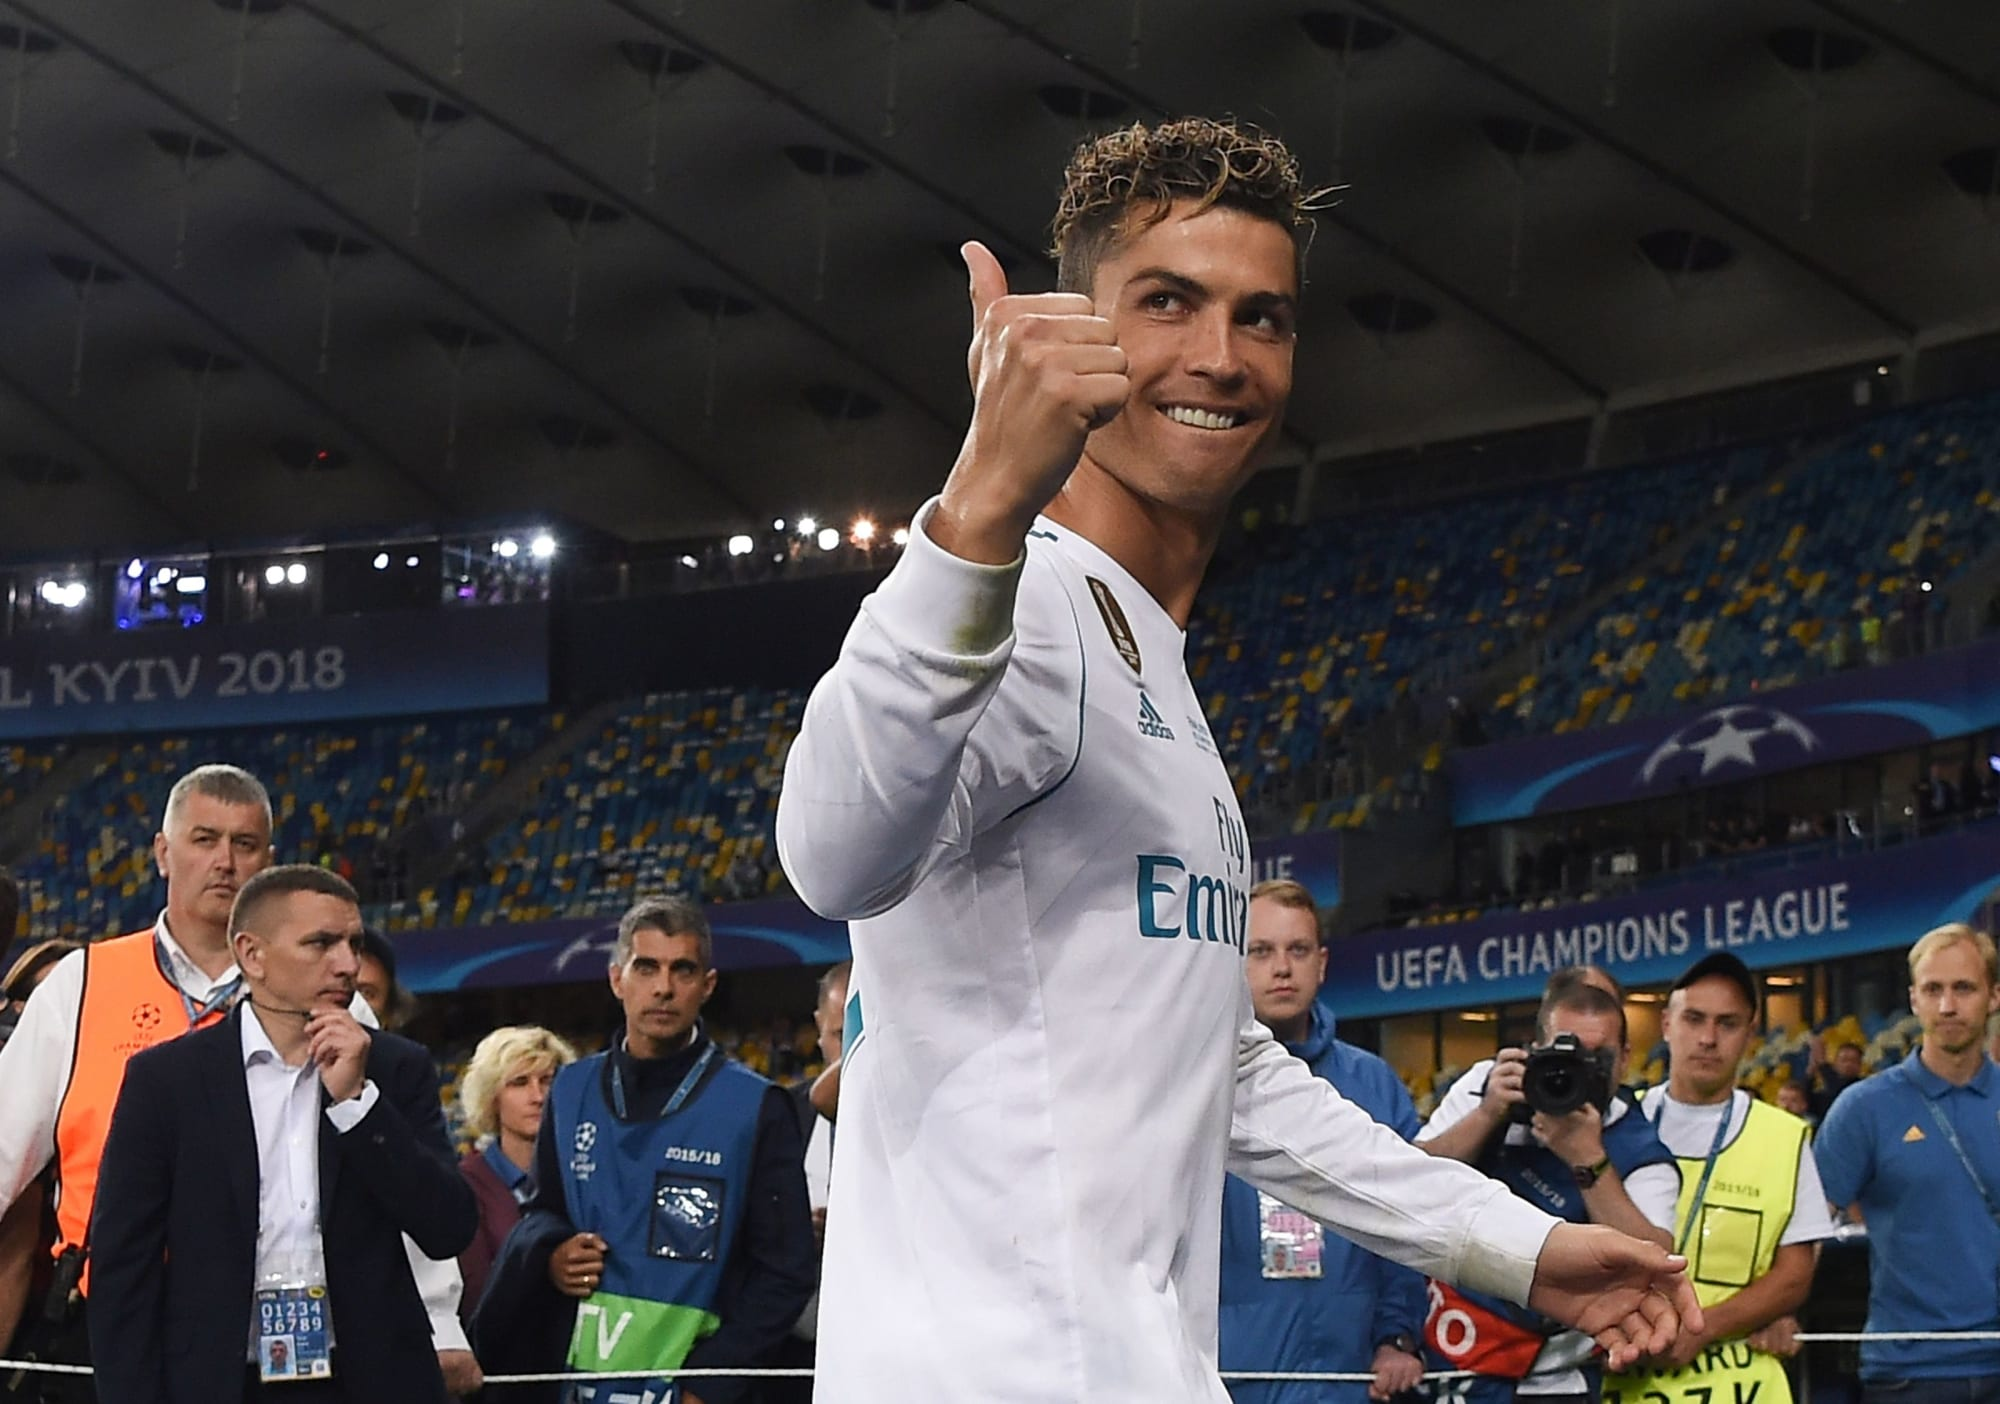 Real Madrid Transfers: Cristiano Ronaldo and 3 former players to target this summer